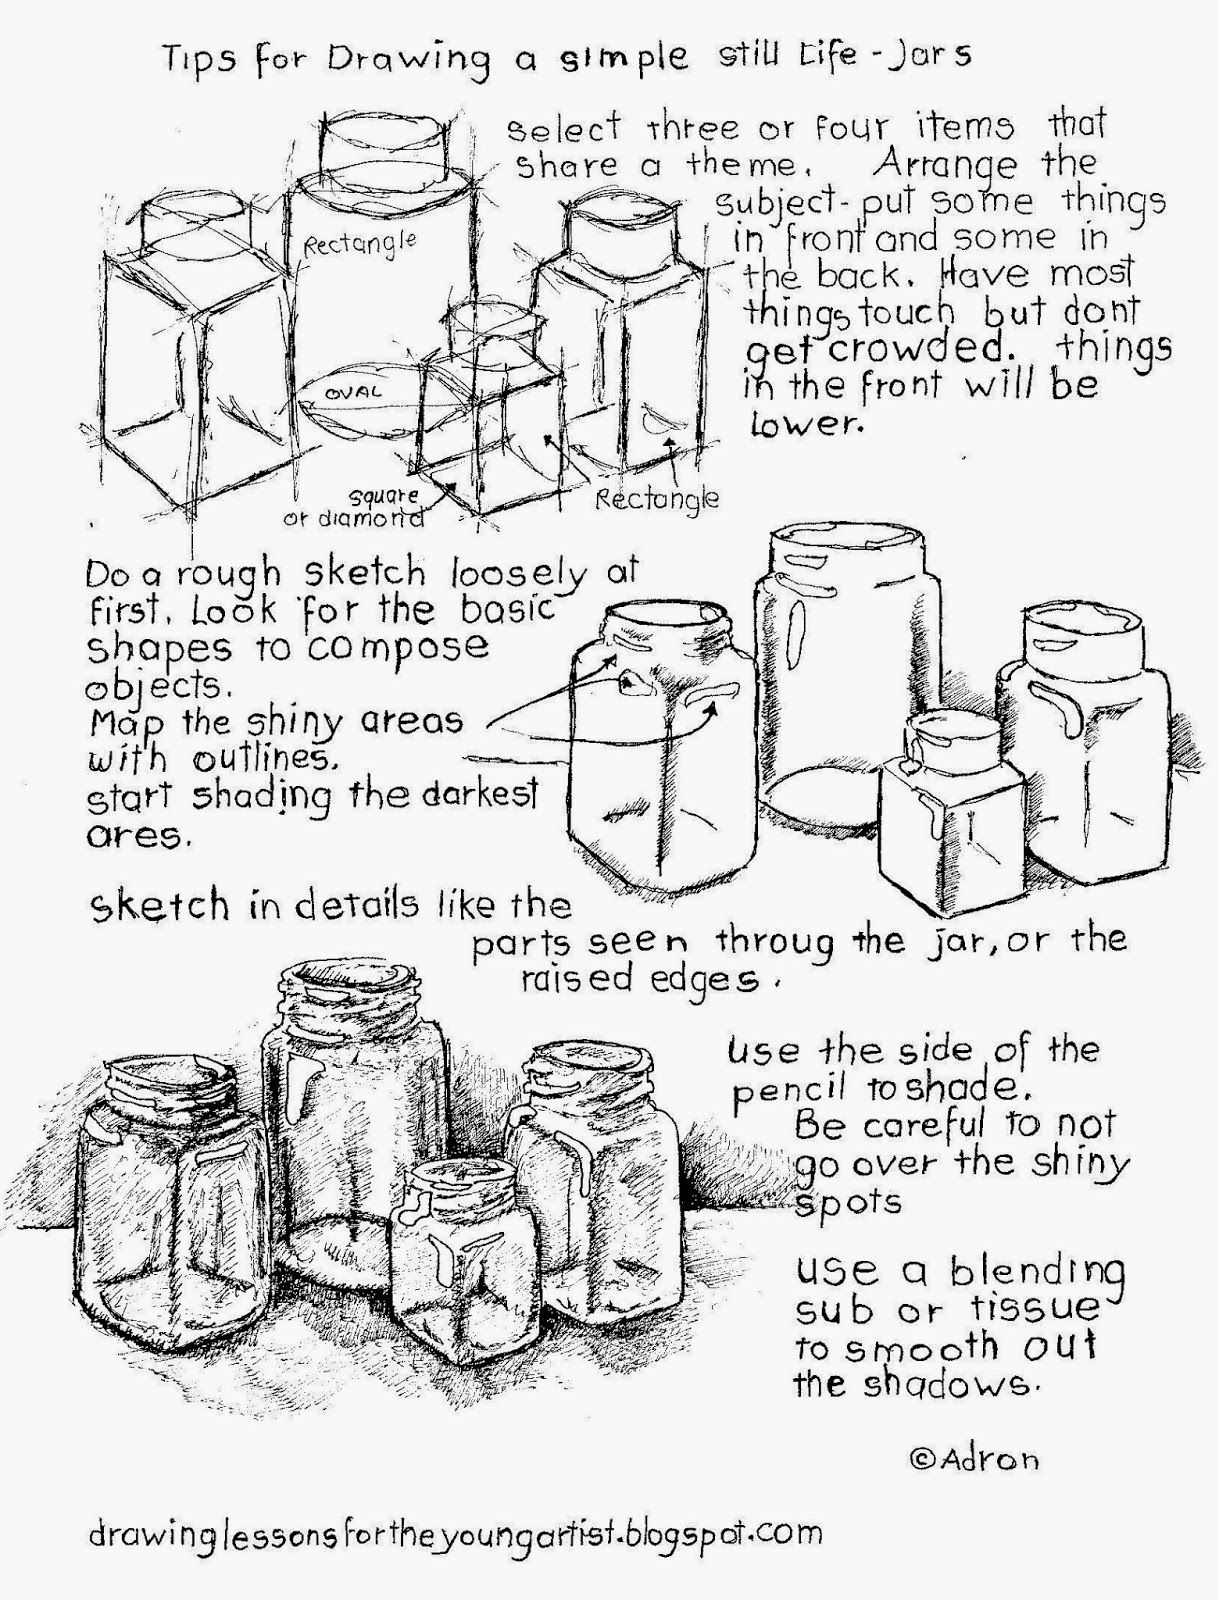 Tips For How To Draw A Still Life, Free Printable Worksheet. (How To - Free Printable Drawing Worksheets